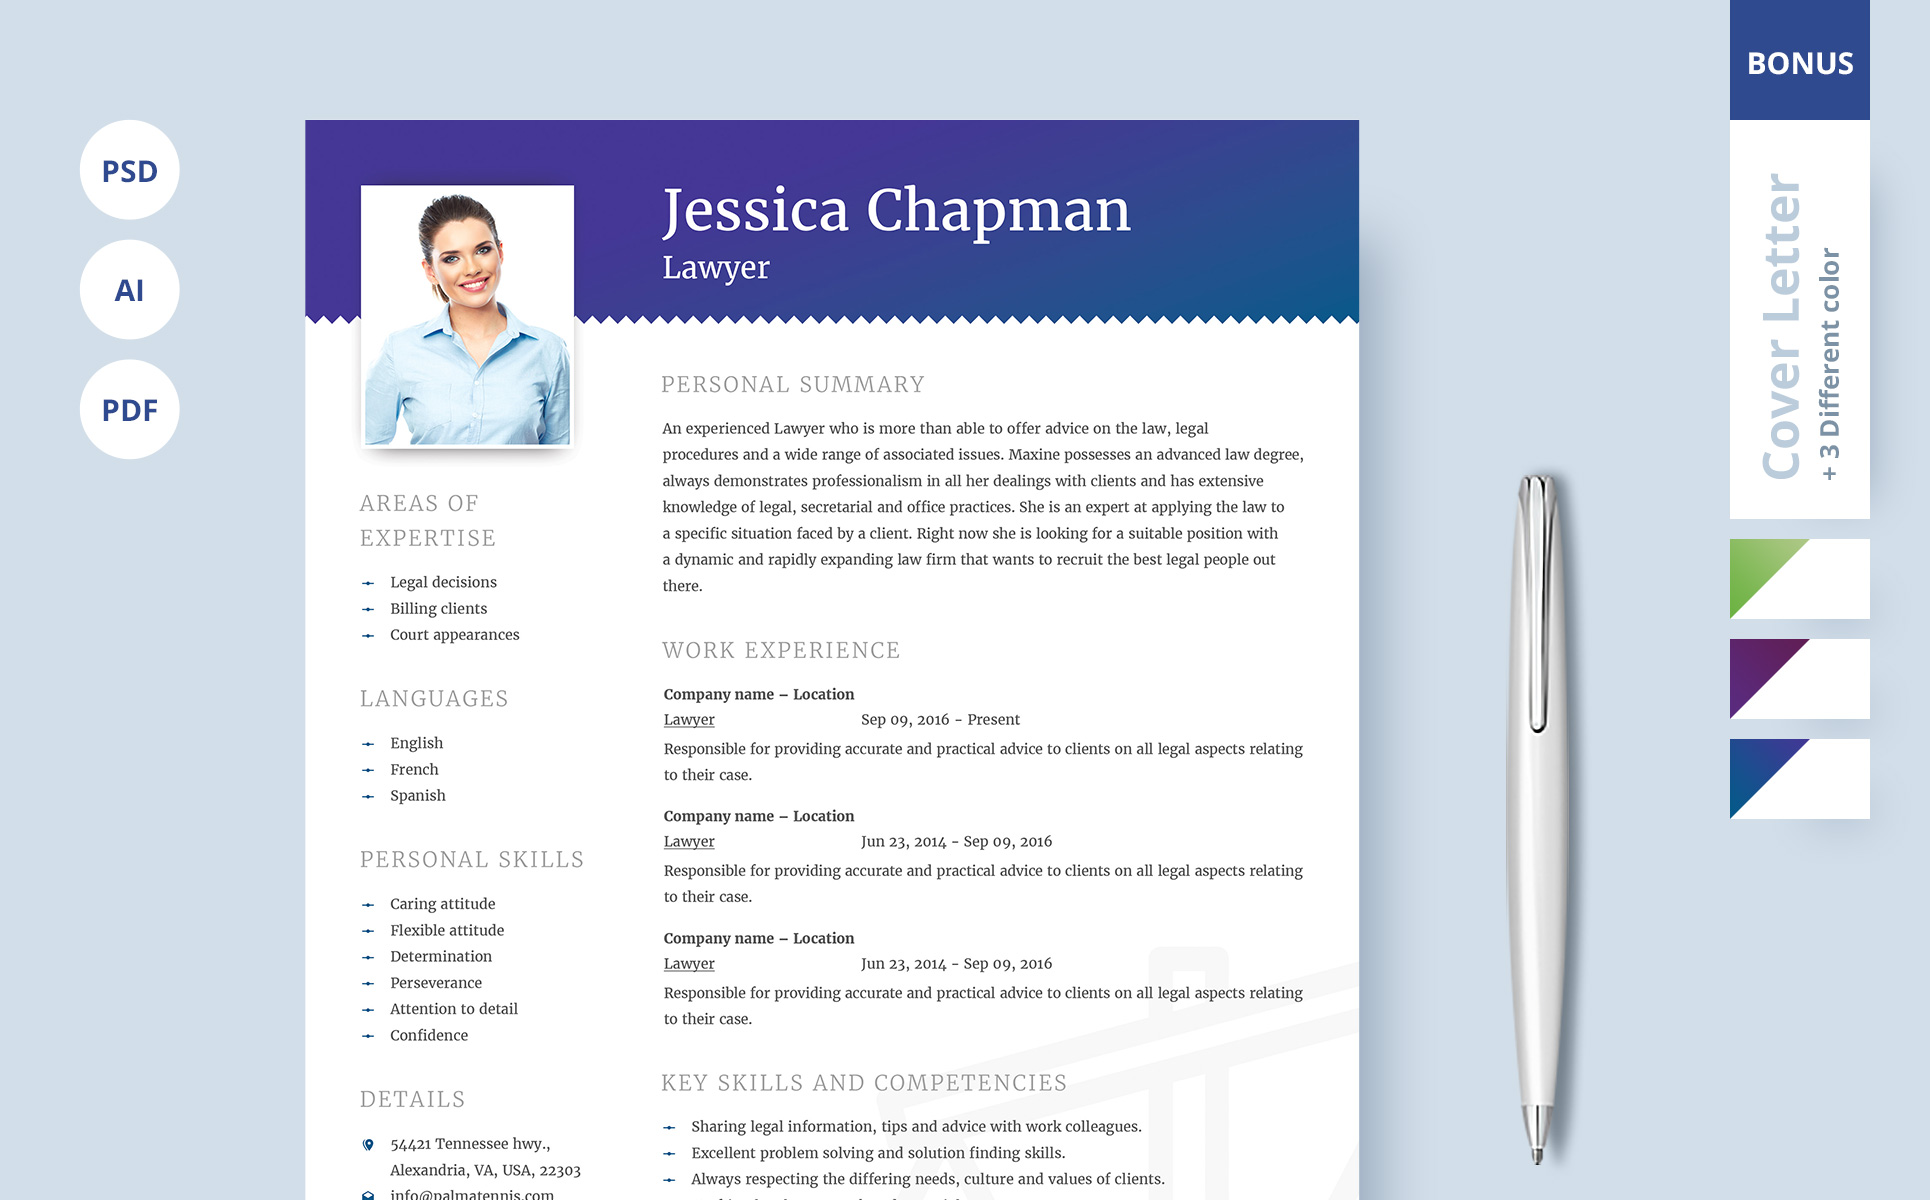 Jessica chapman lawyer cv resume template 64868 jessica chapman lawyer cv resume template big screenshot yelopaper Choice Image